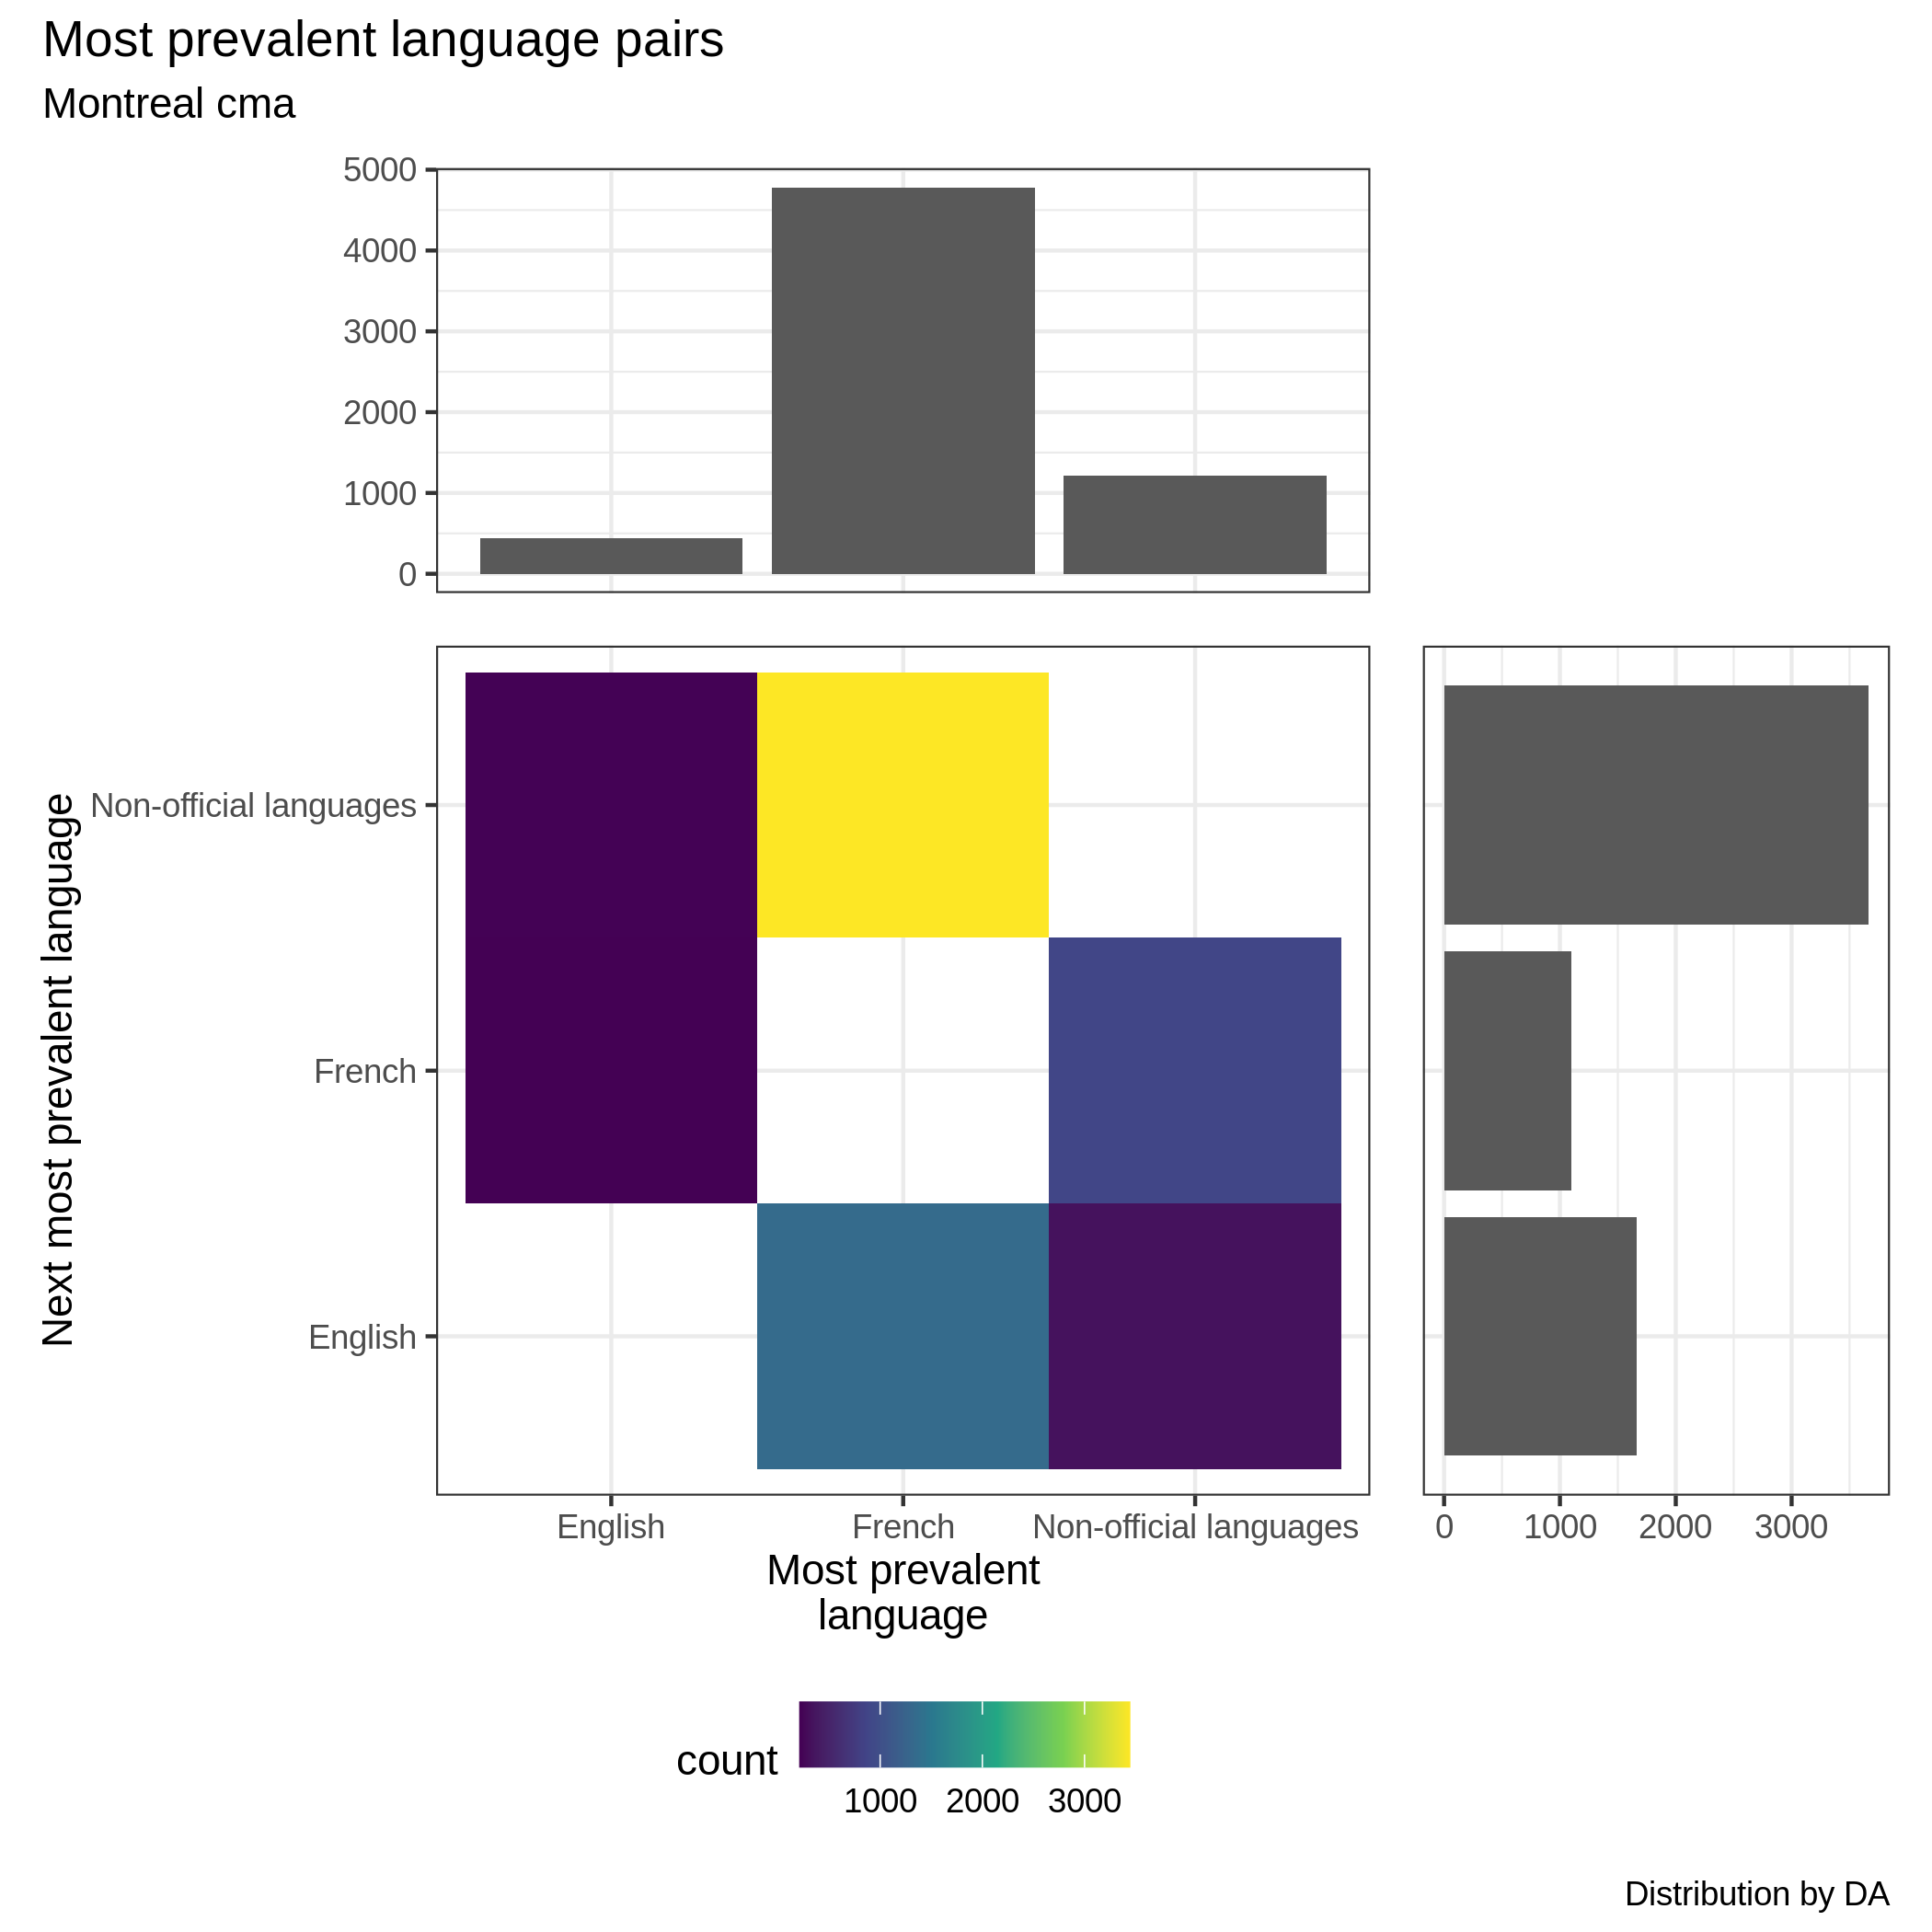 Montreal distribution of most prevalent language pairs. The 2 bar plots correspond to the marginal distributions of the first and second most prevalent languages per dissemination area. The middle plot represents the joint distribution of most prevalent language pairs per DA for the entire census metropolitan area (CMA).